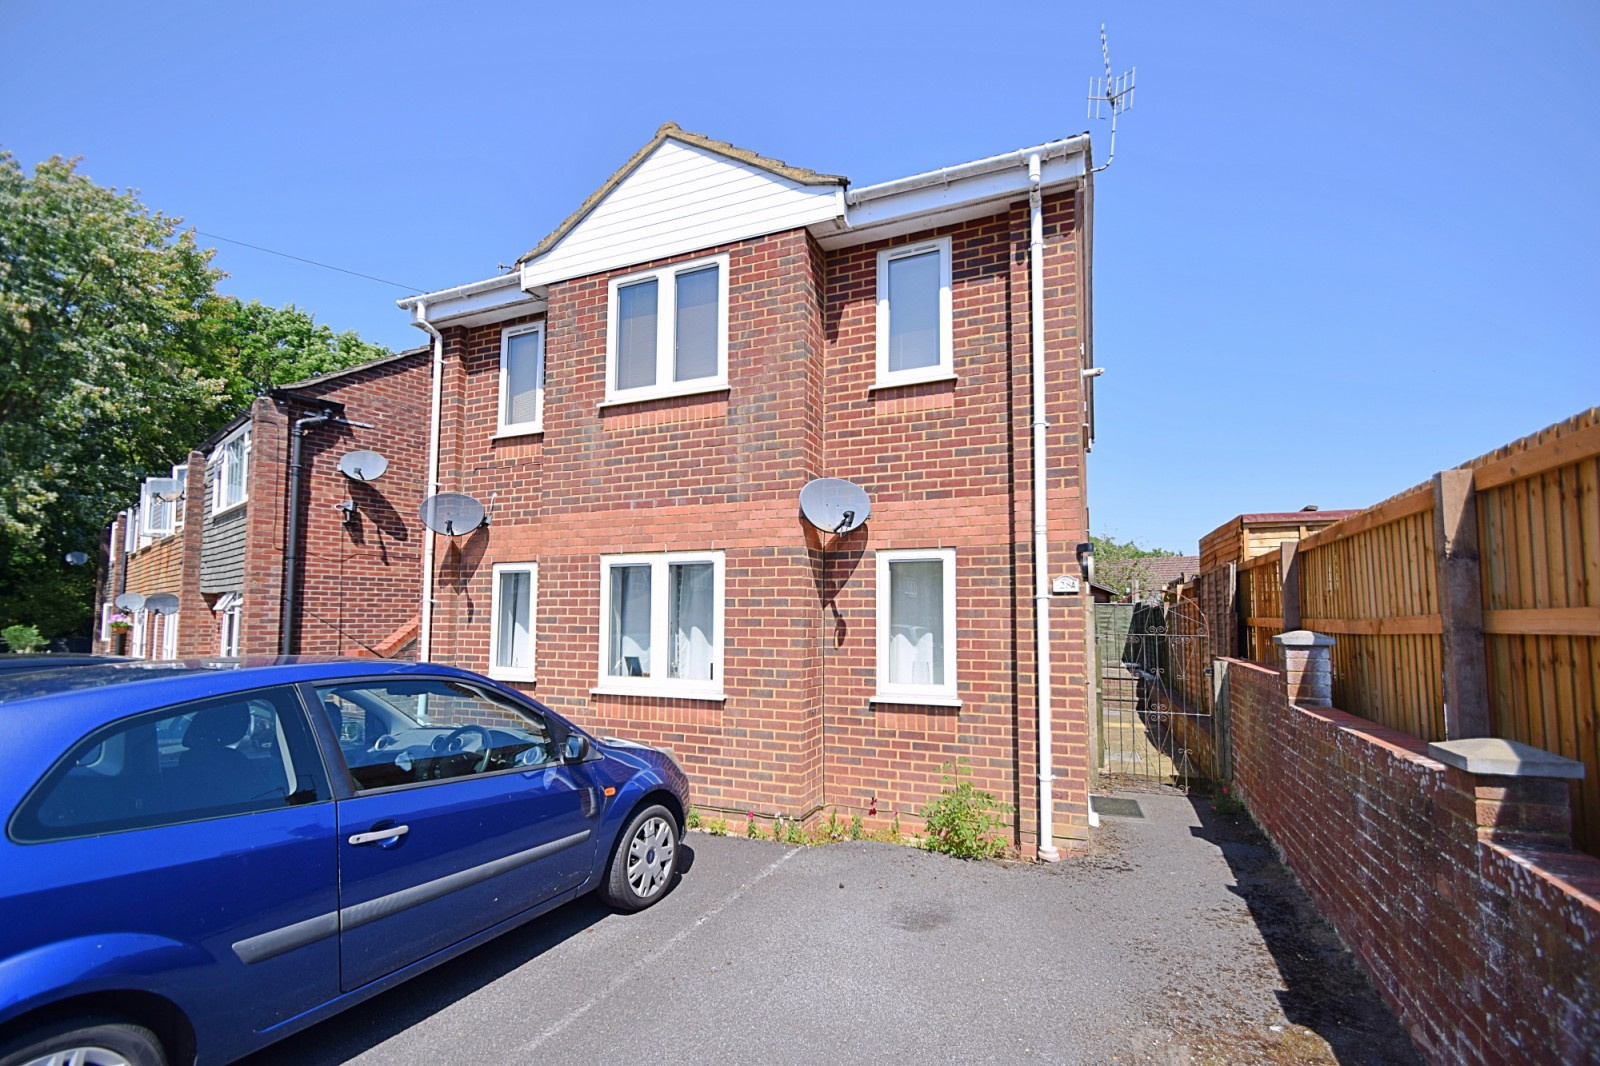 28a Fleming Place, Colden Common, Winchester SO21 1SL